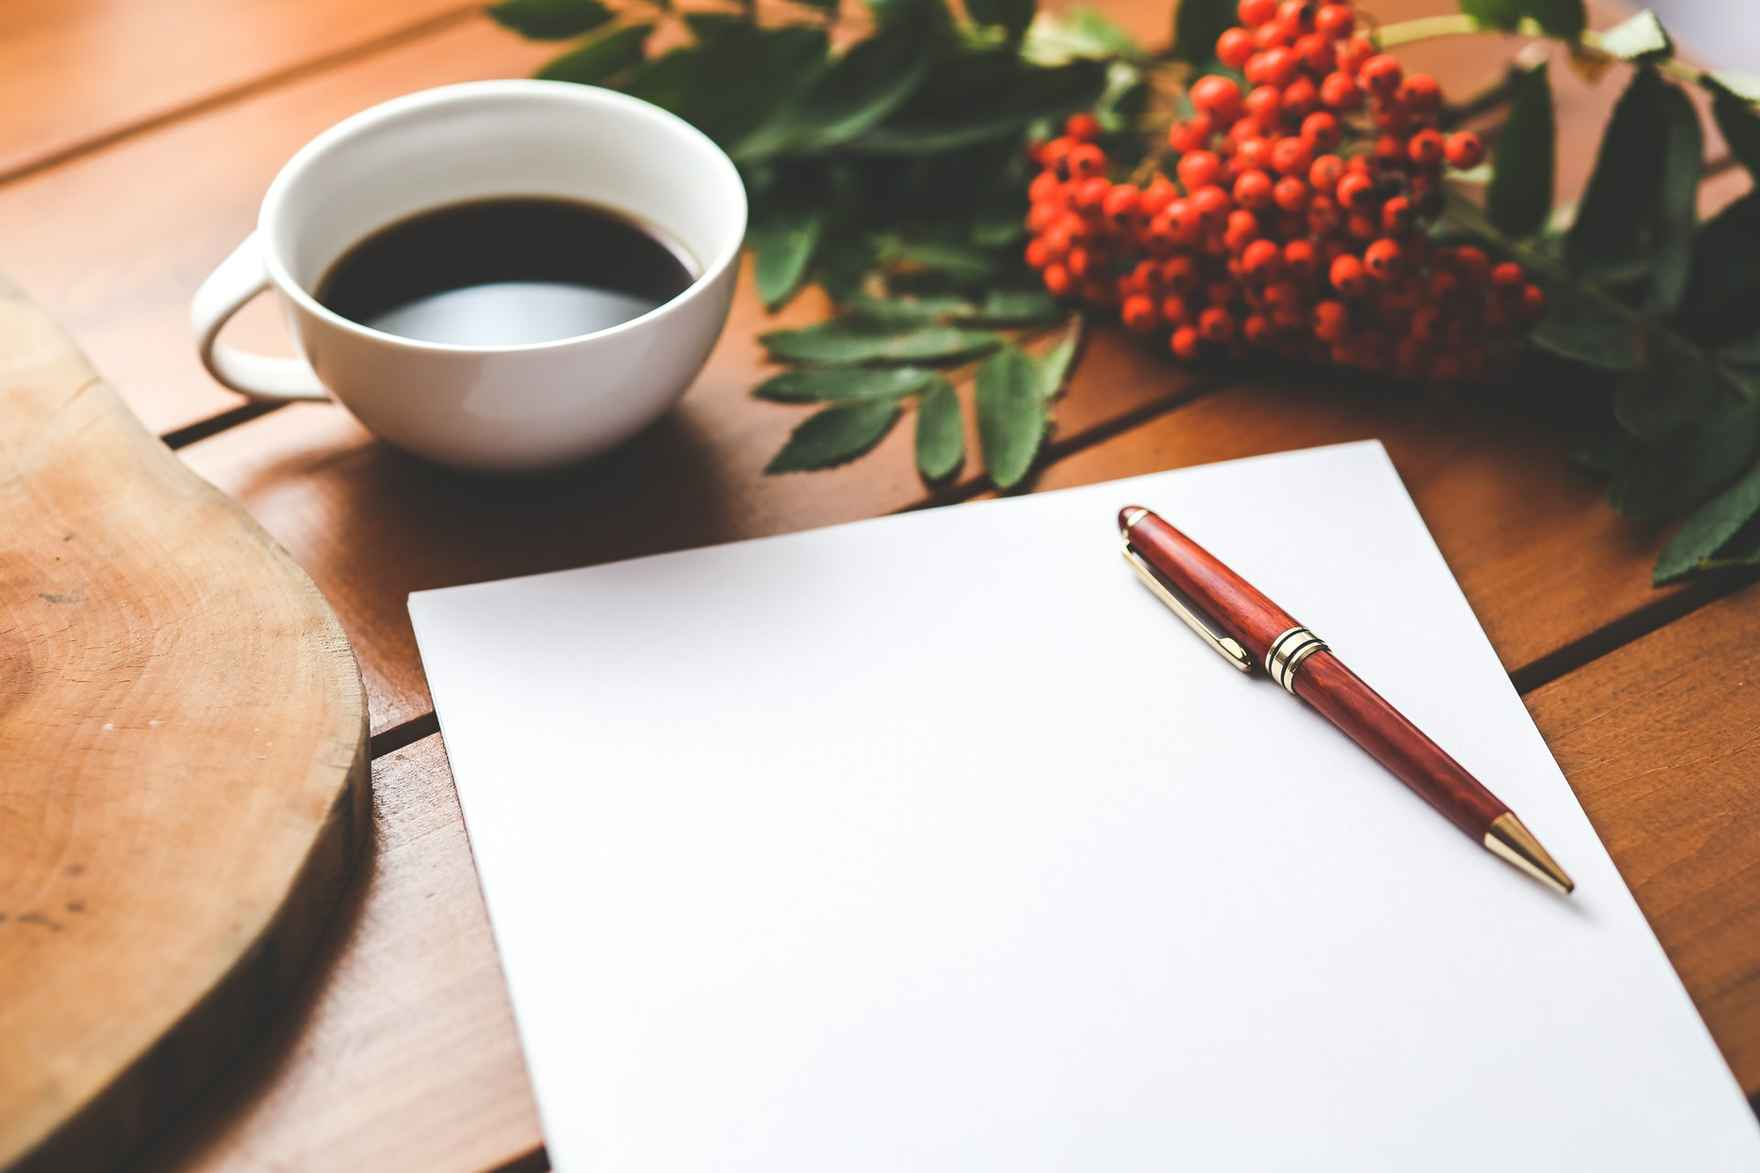 blank-paper-with-pen-and-coffee-cup-on-wood-table-6357.jpg